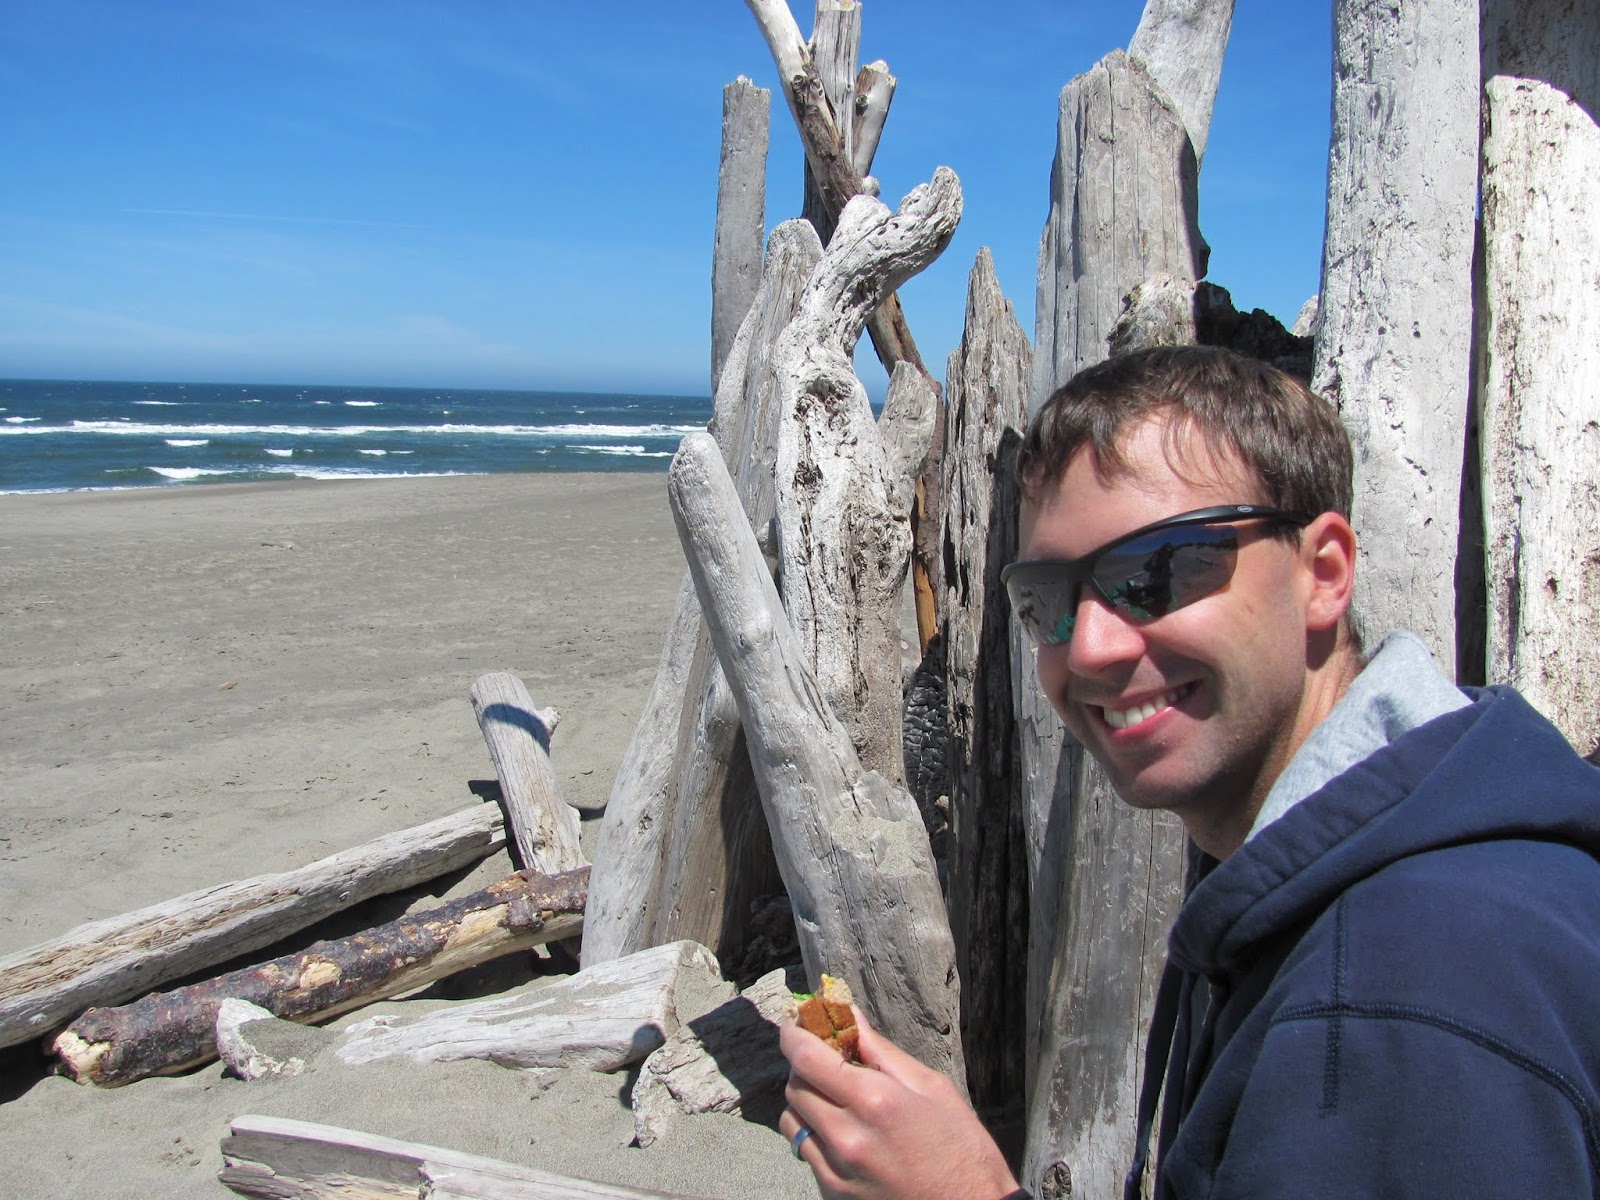 Cory eats a sandwich behind a pile of driftwood and eats a sandwich at Bullards Beach State Park, Oregon